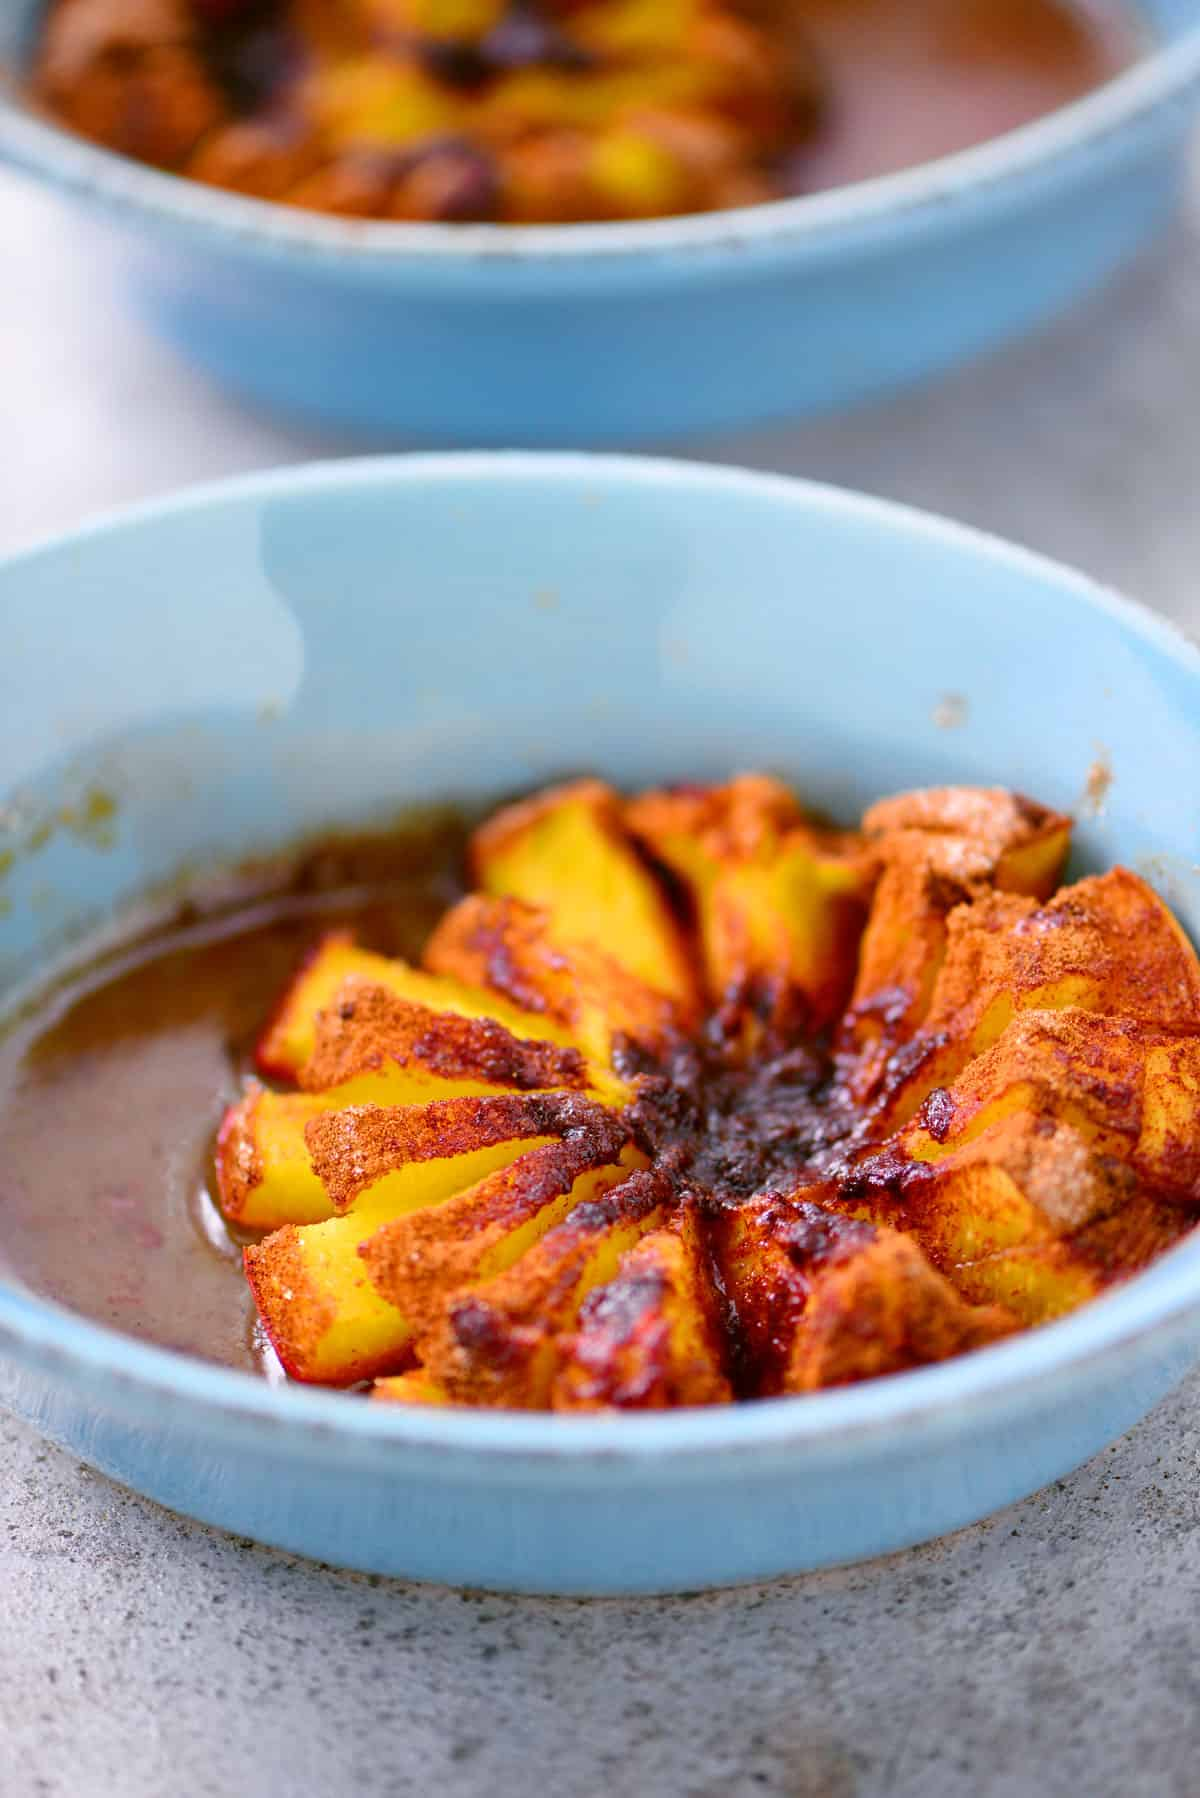 baked peach in blue dish